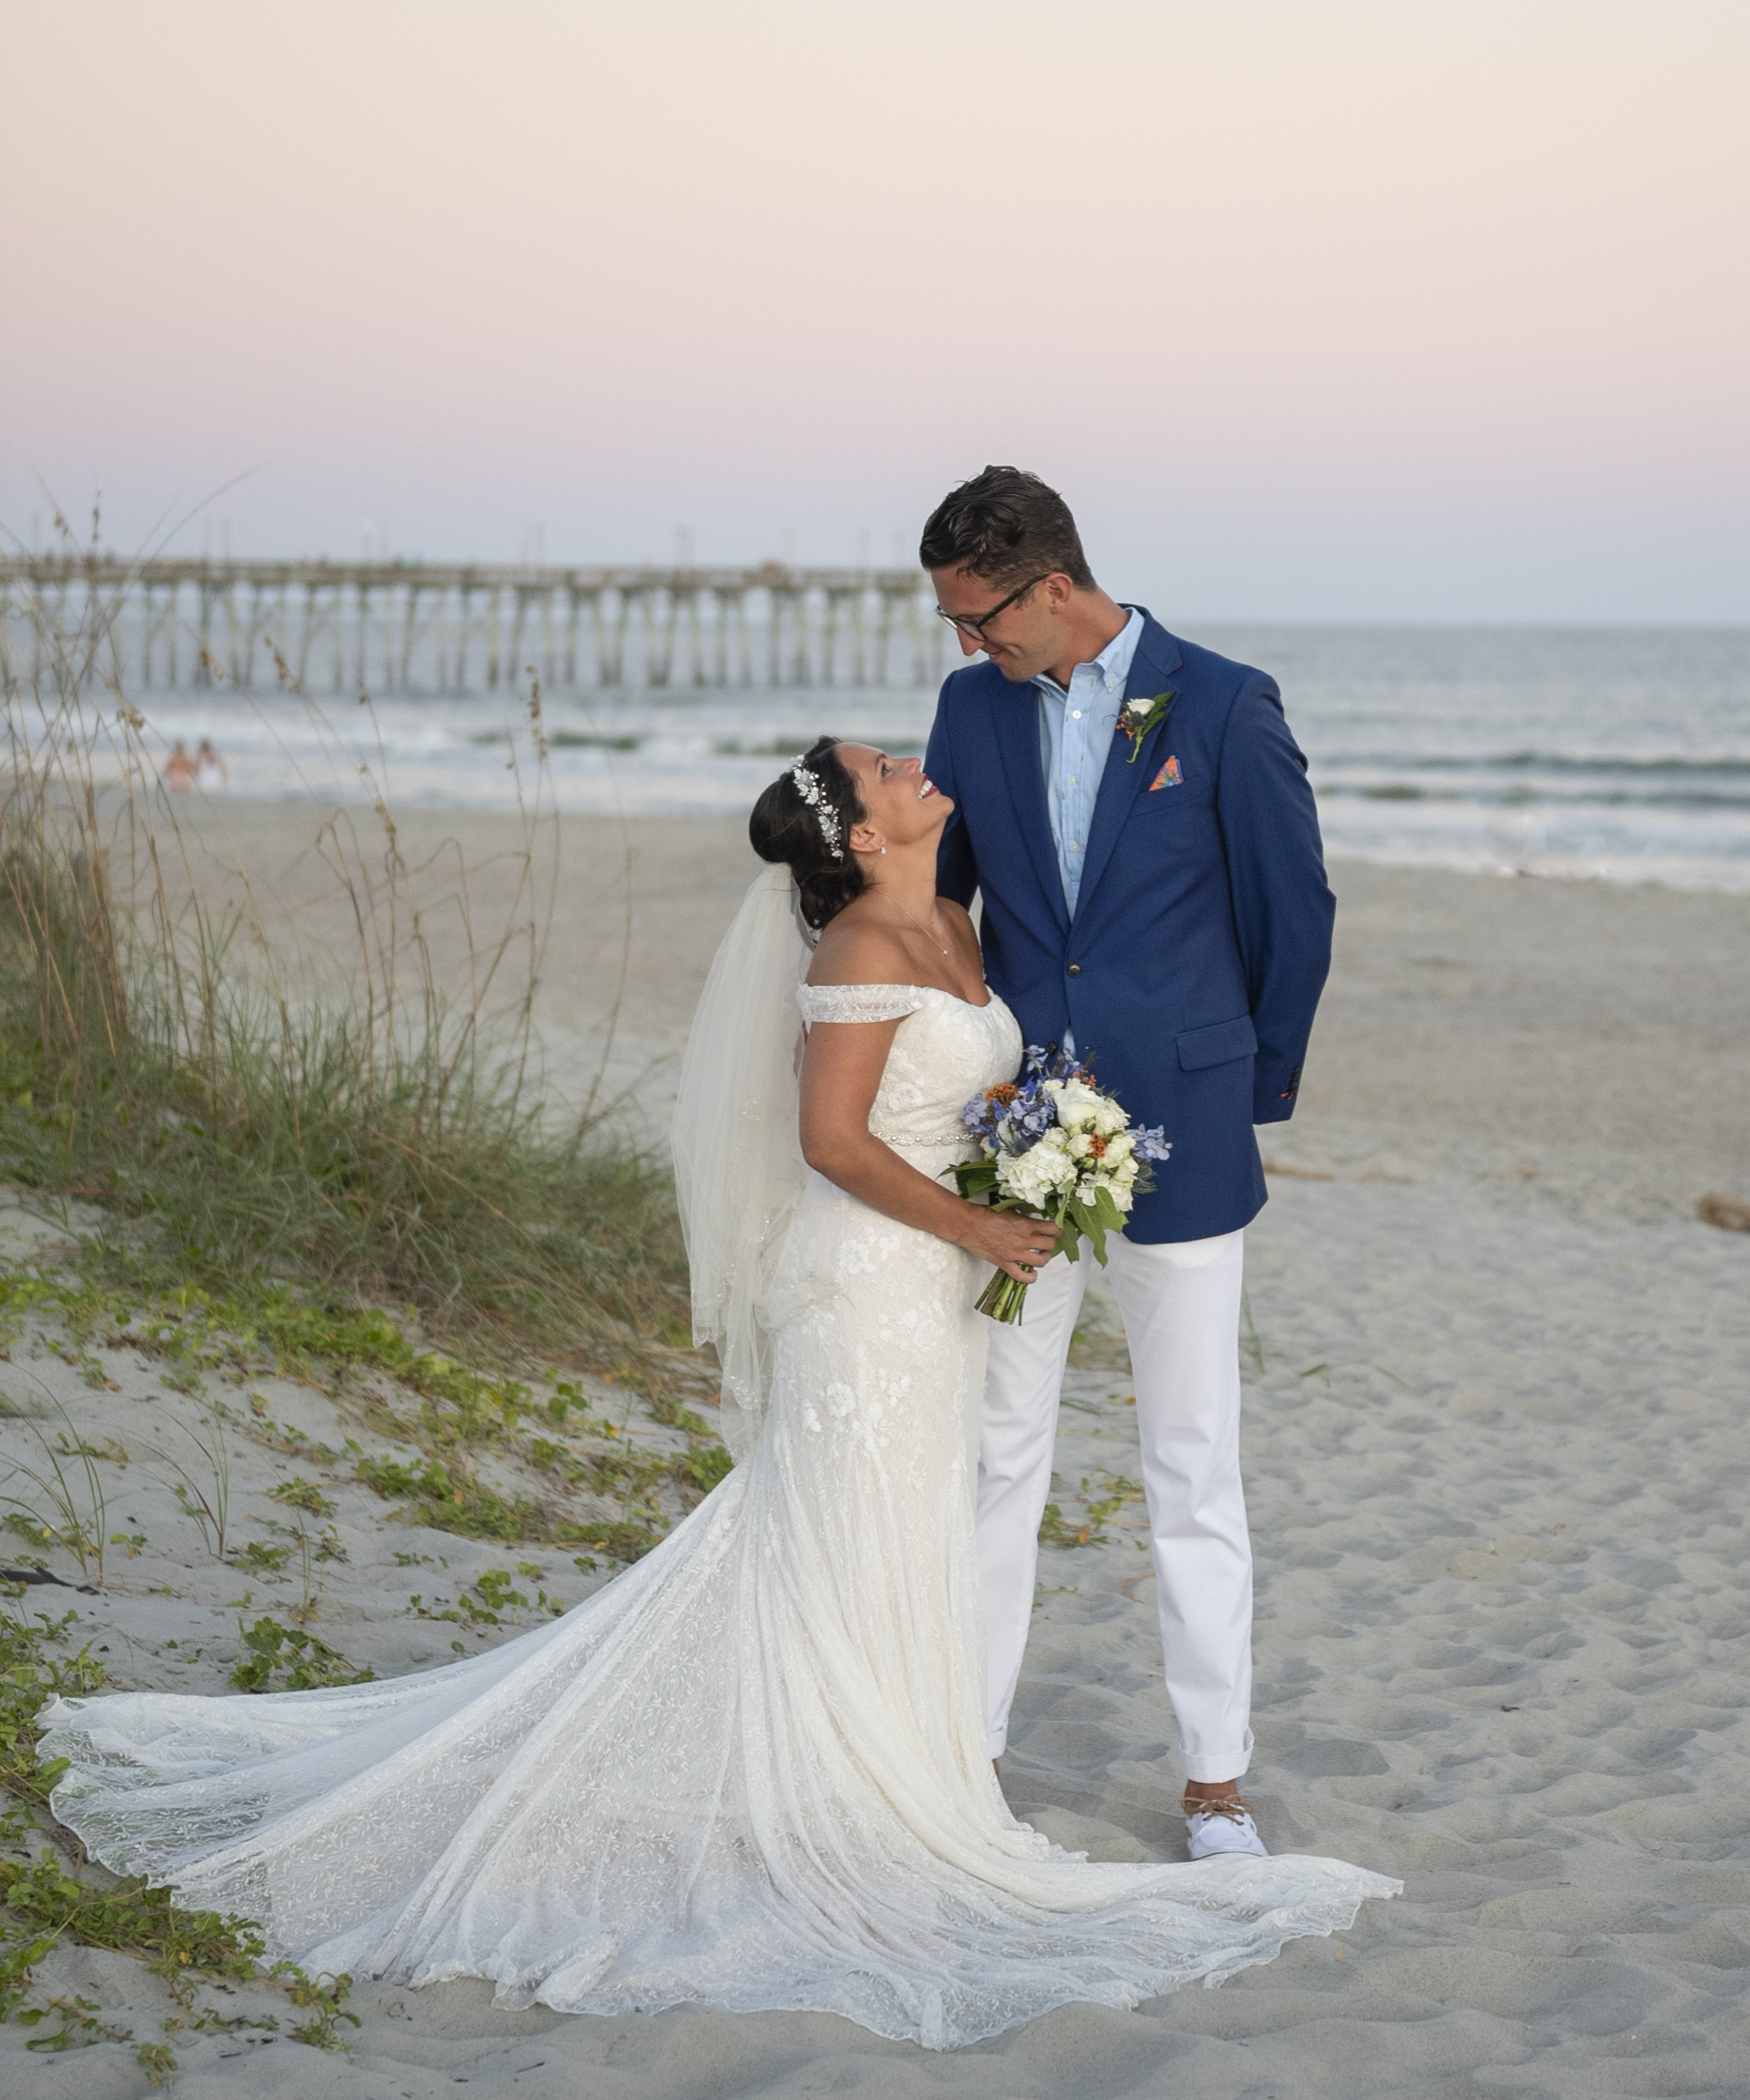 Frank Hart Photography photo of couple at Ocean Isle Inn wedding at sunset.